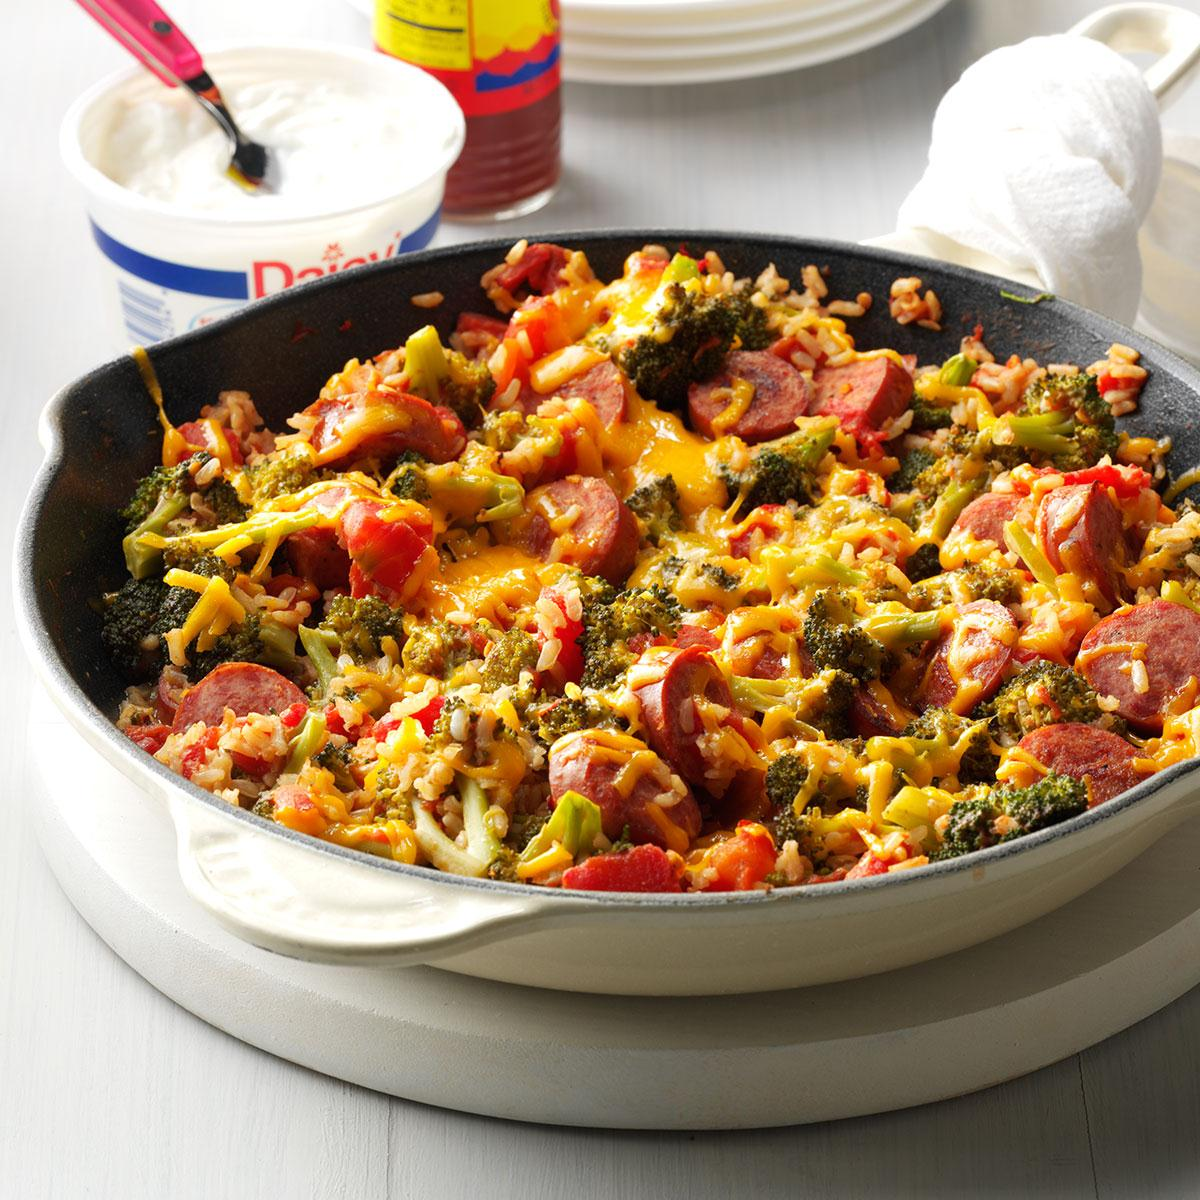 Broccoli Rice And Sausage Dinner Recipe How To Make It Taste Of Home